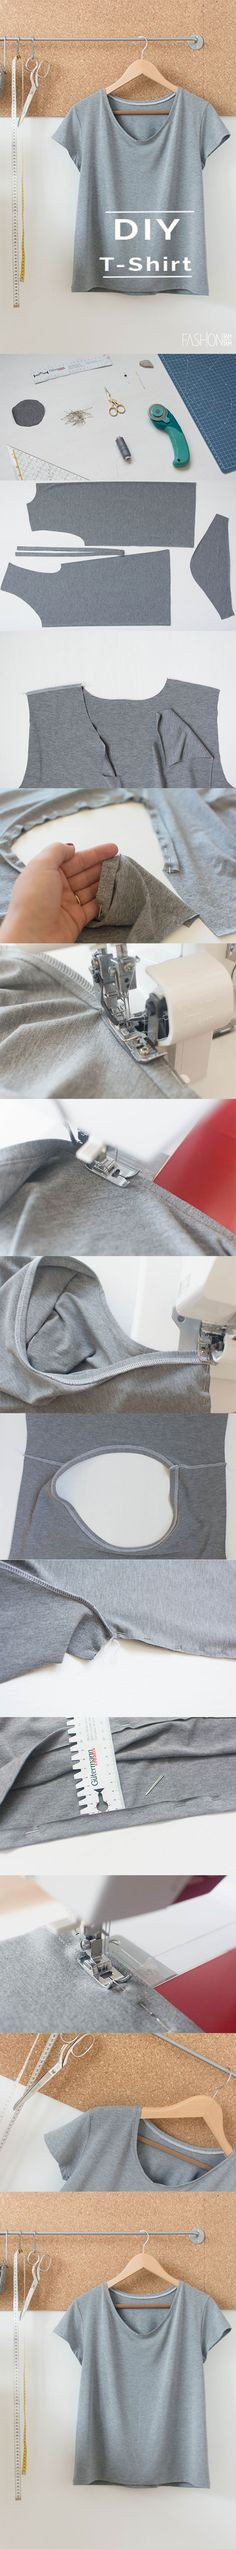 DIY FASHION ^ DIY T-